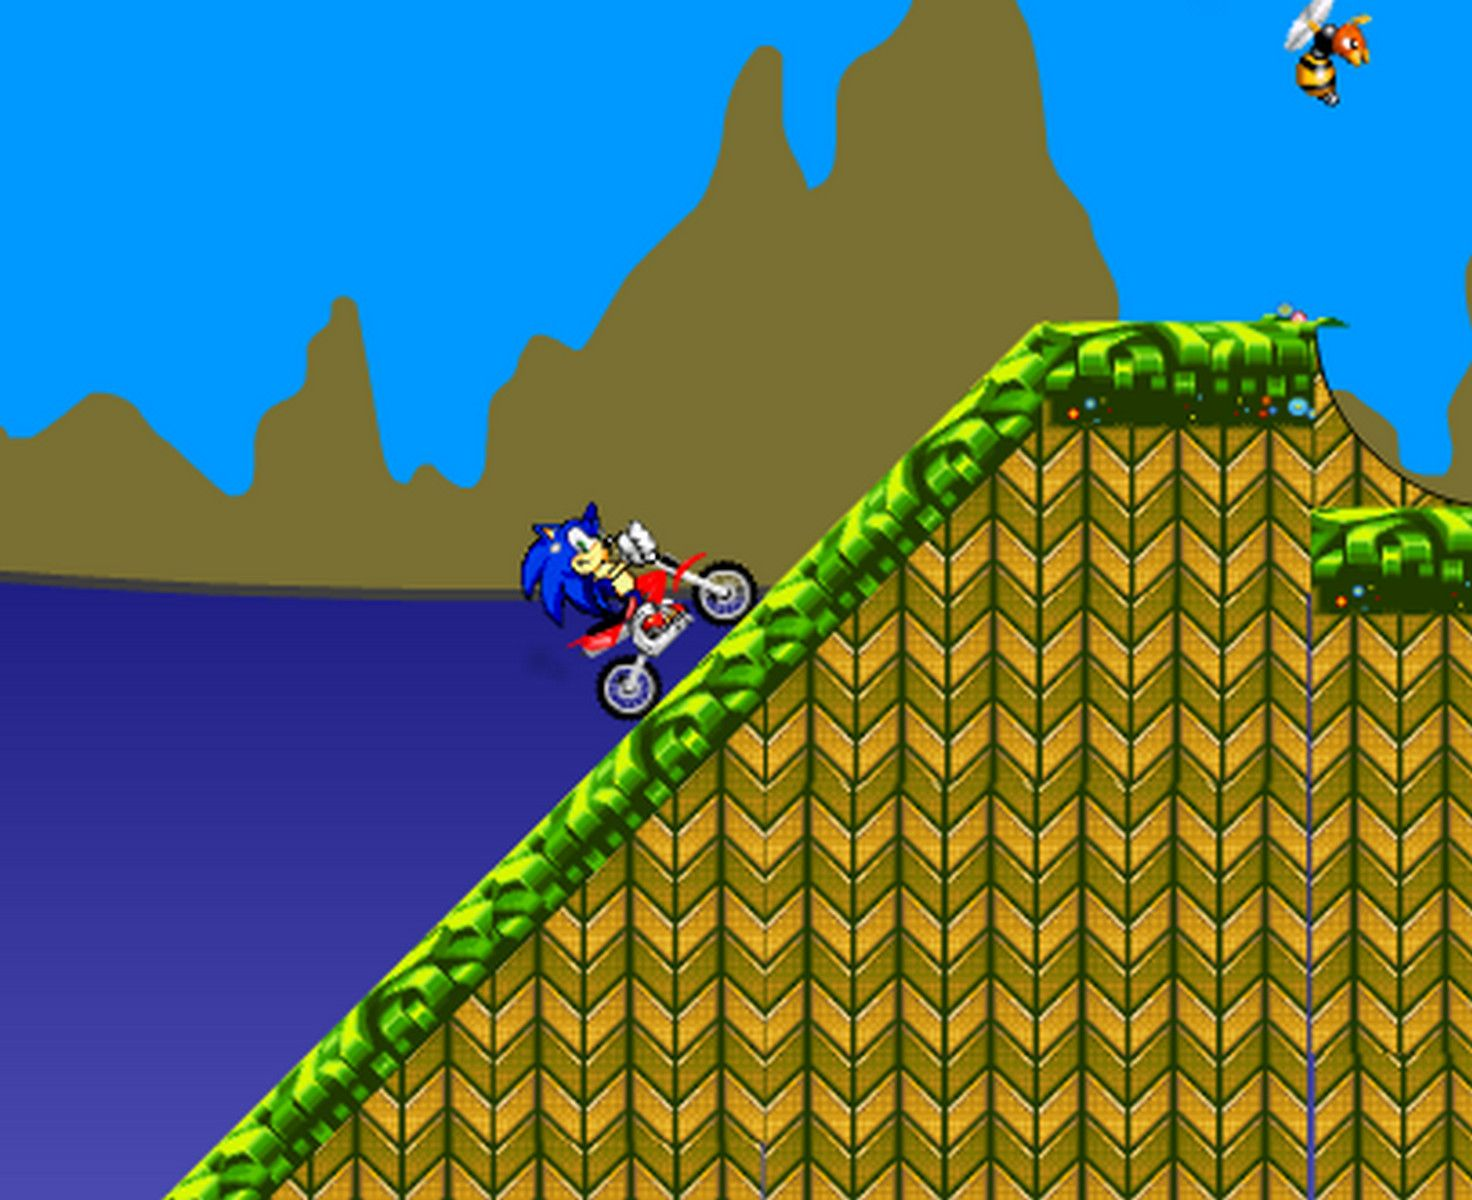 Sonic the Hedgehog Moto Free game sites, Games, Latest games